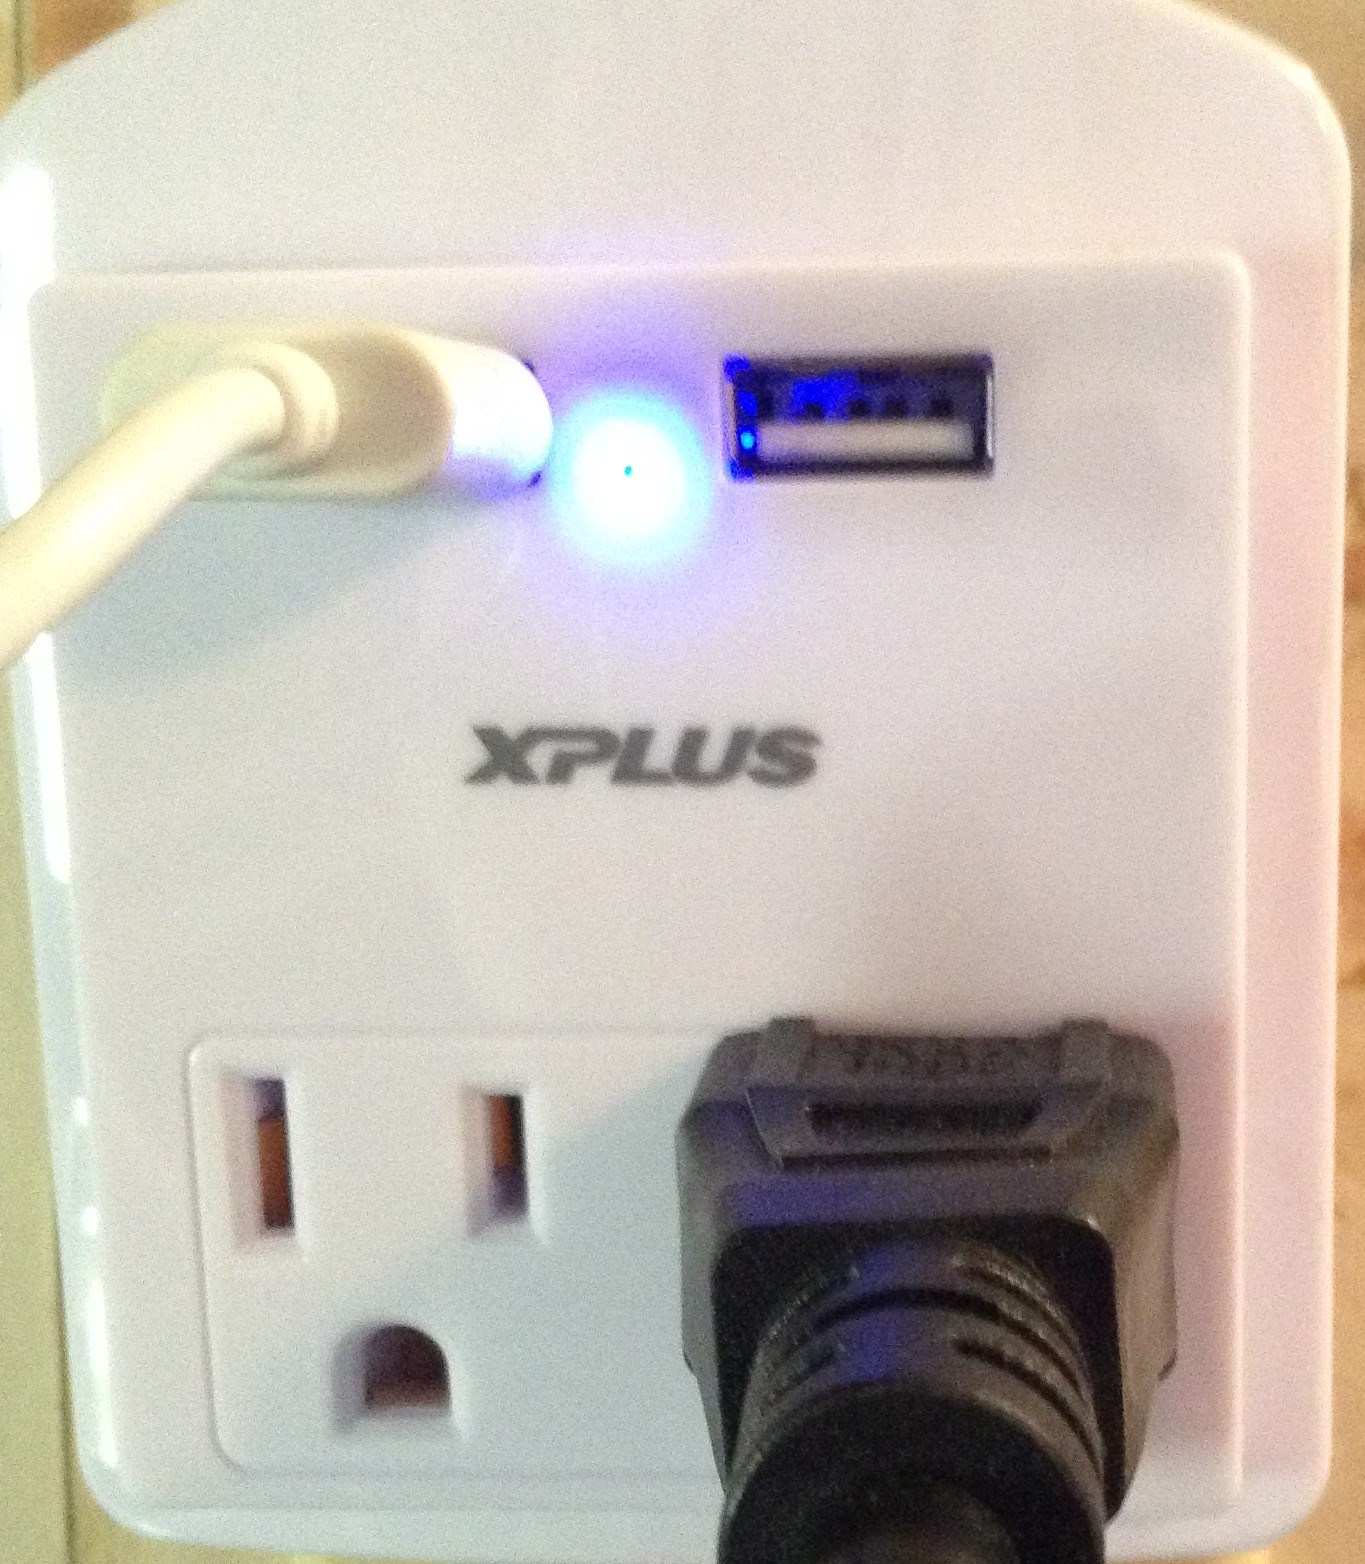 expand your outlet